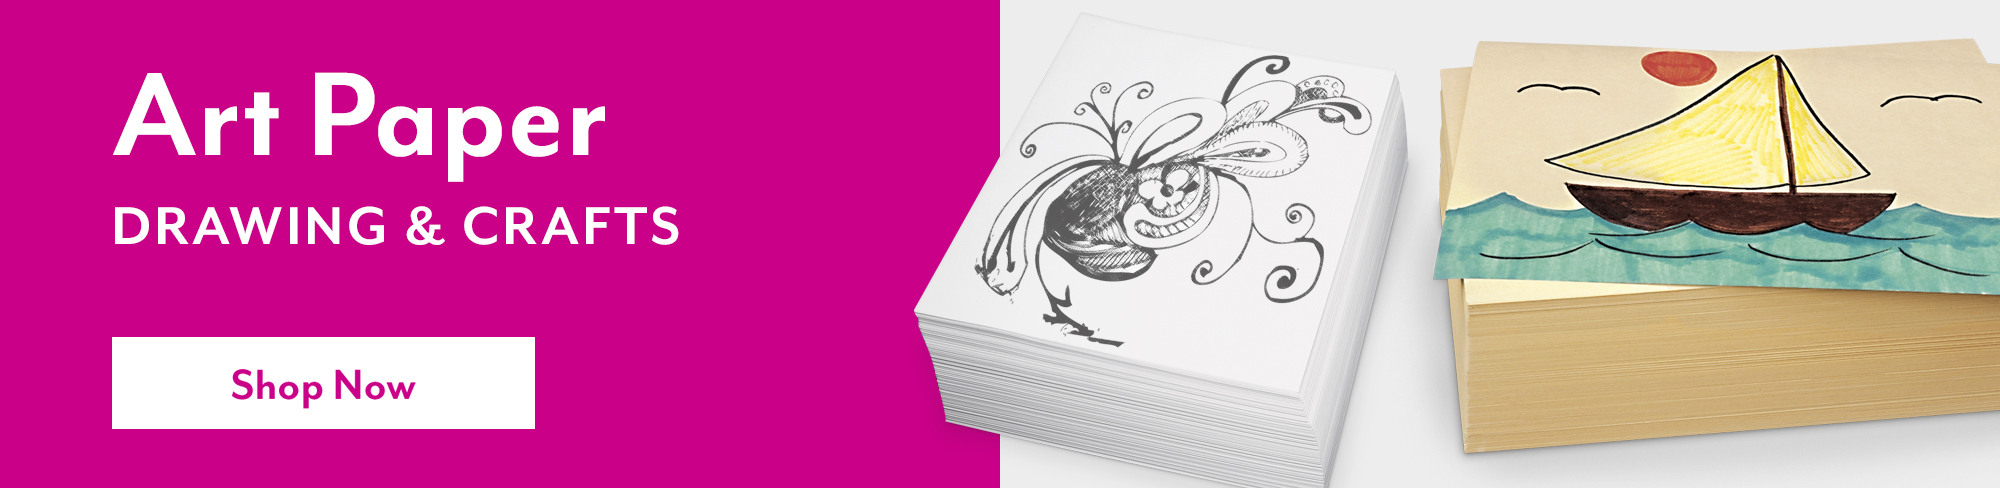 Art paper for drawing and crafts - Shop Now